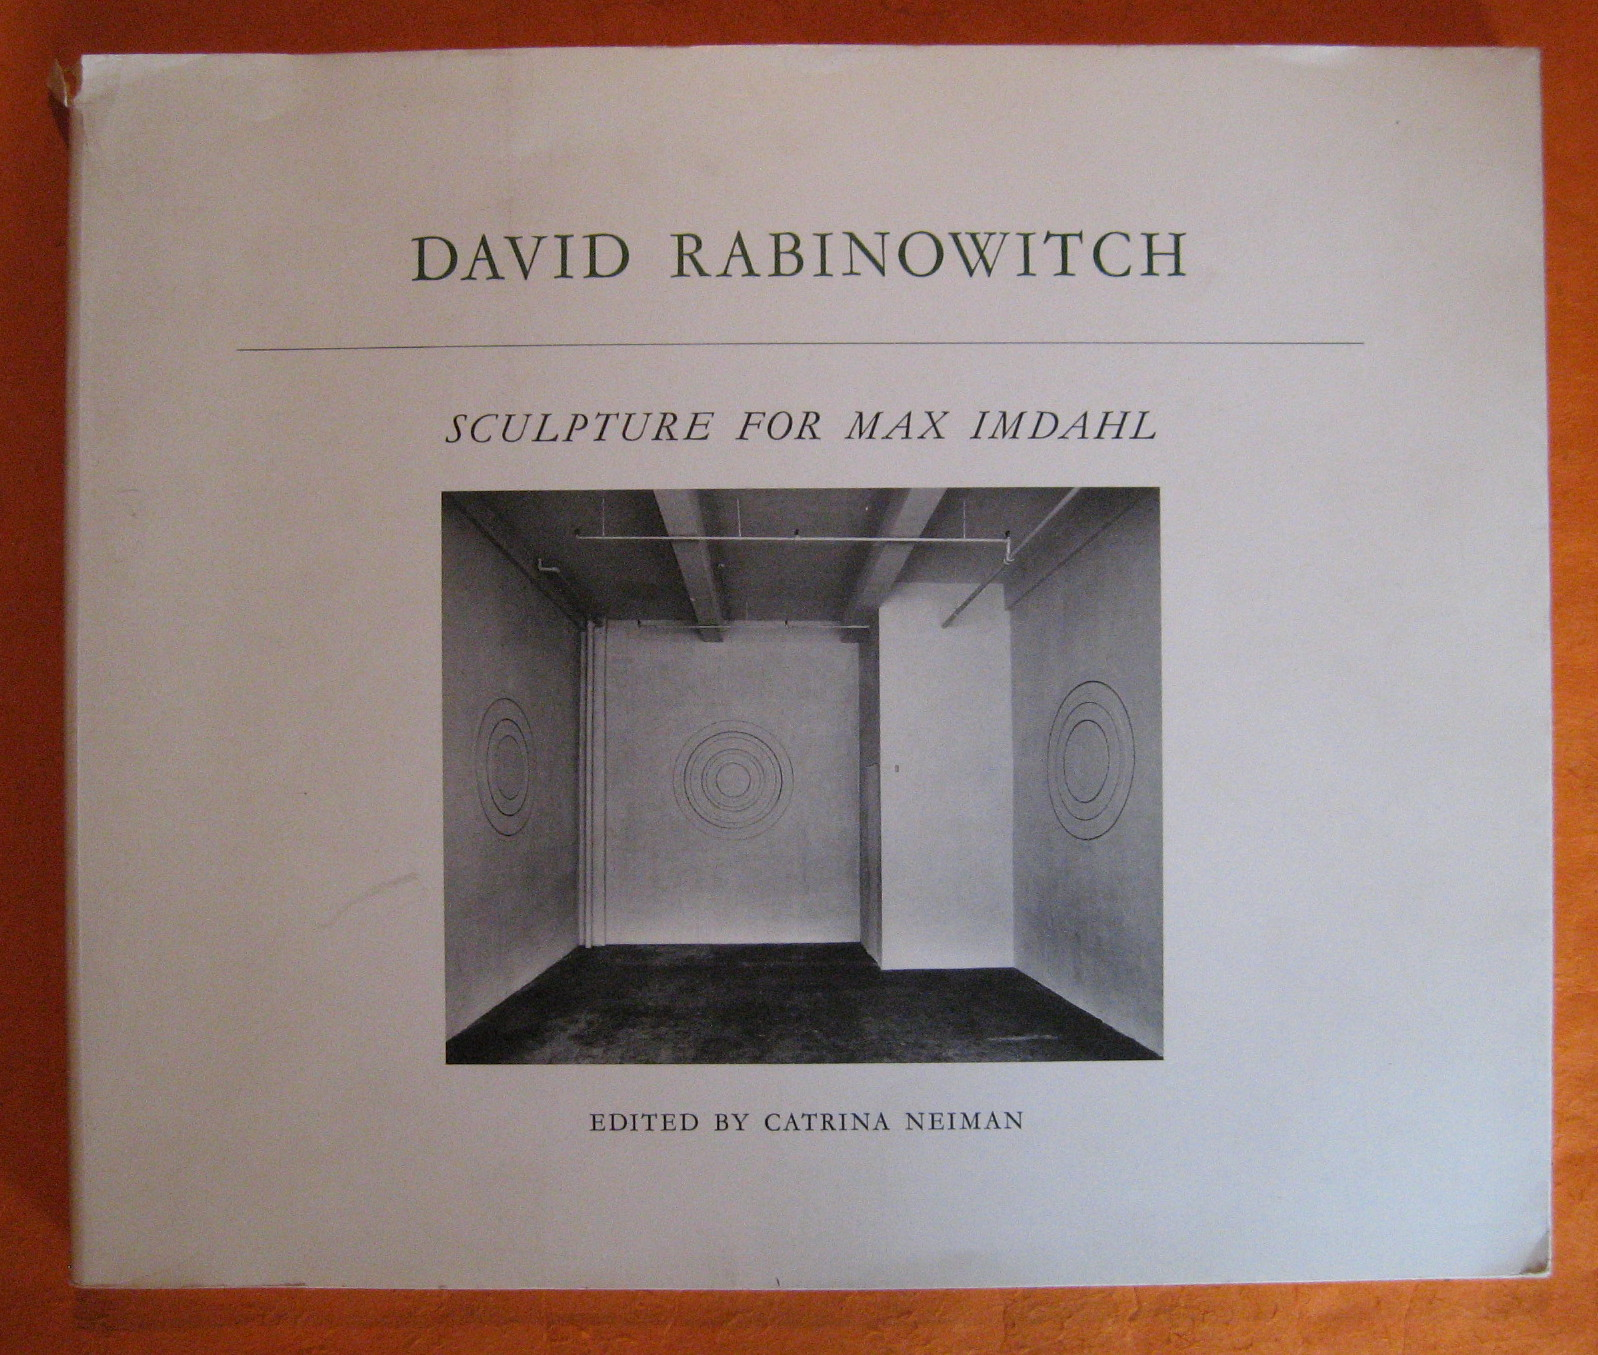 David Rabinowitch: Tyndale Constructions in Five Planes with West Fenestration and Sculpture for Max Imdahl 1988, Rabinowitch, David